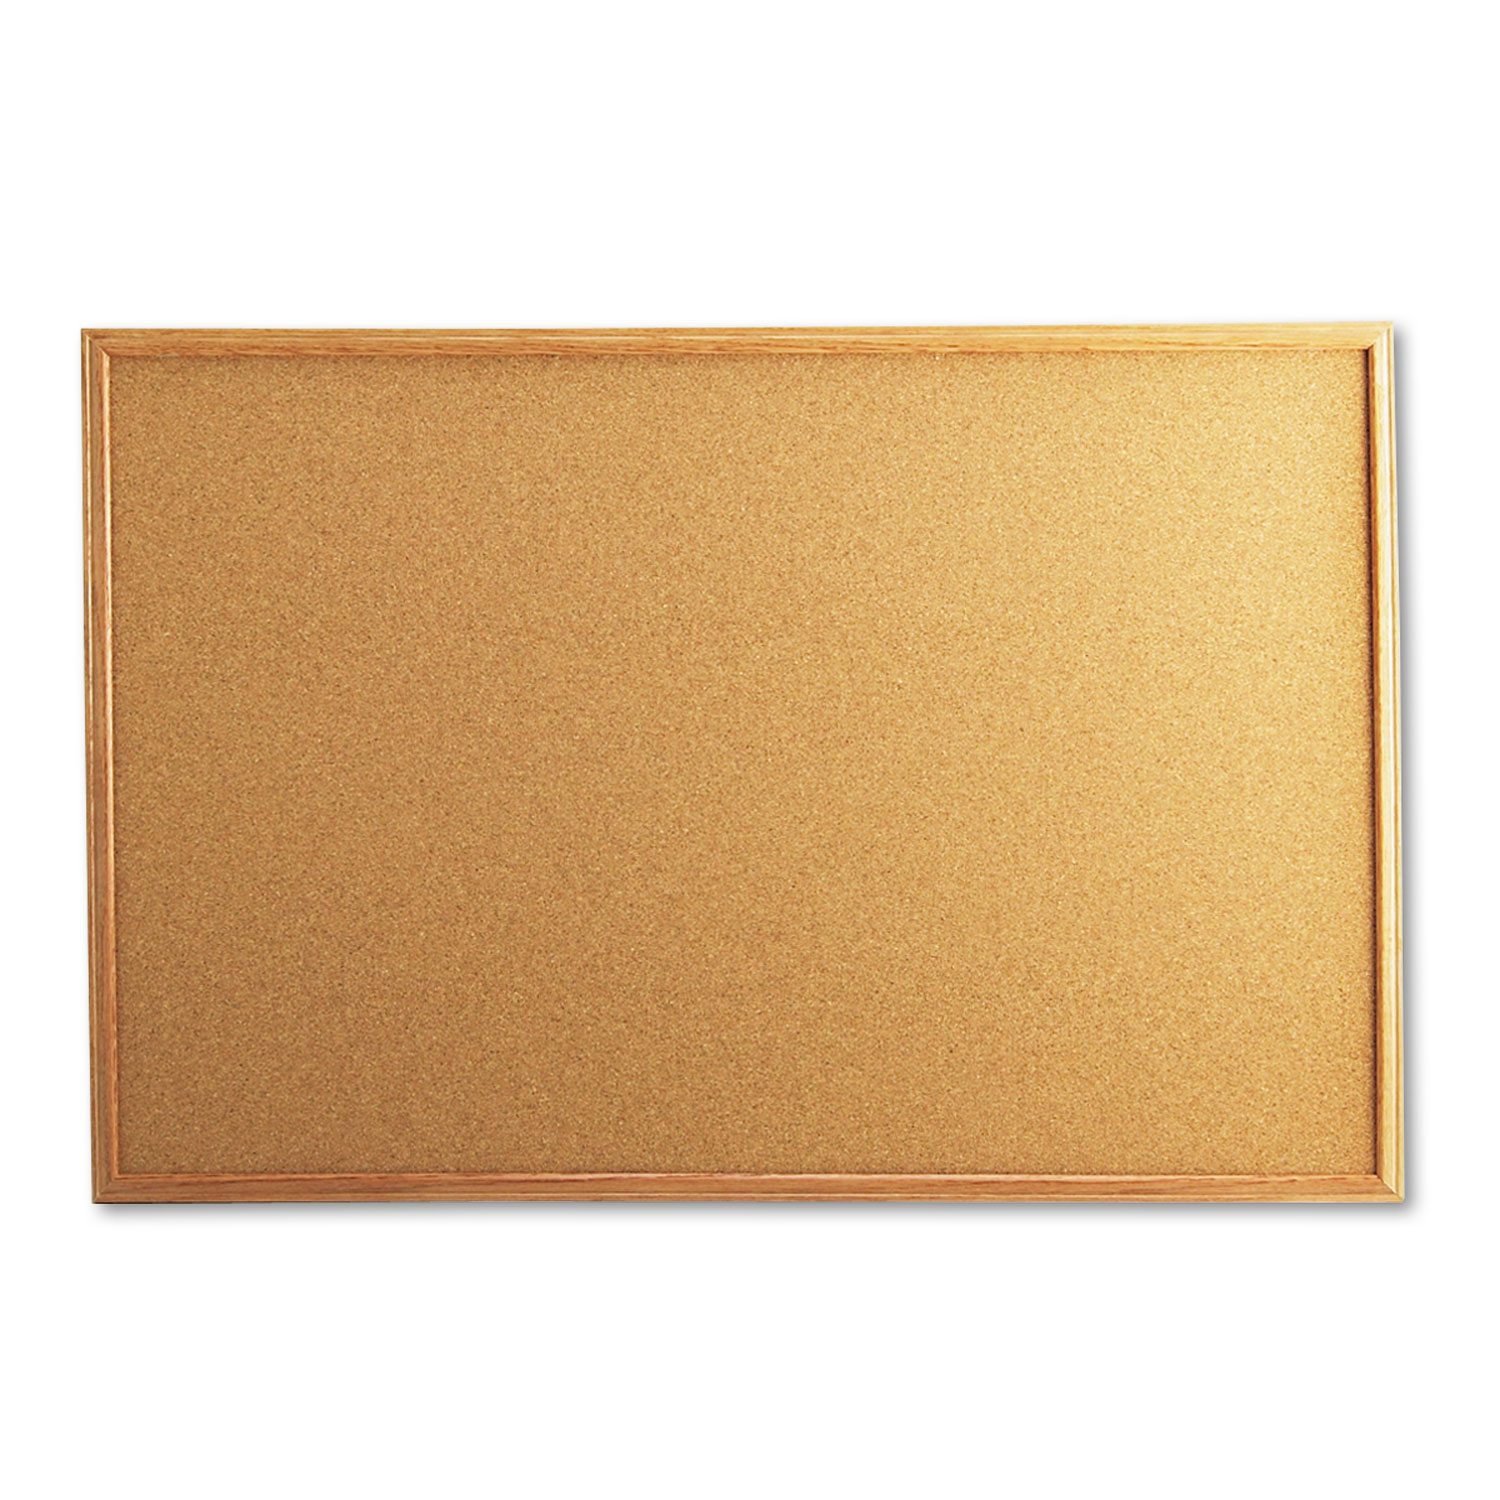 Cork Board with Oak Style Frame, 36 x 24, Natural, Oak-Finished Frame